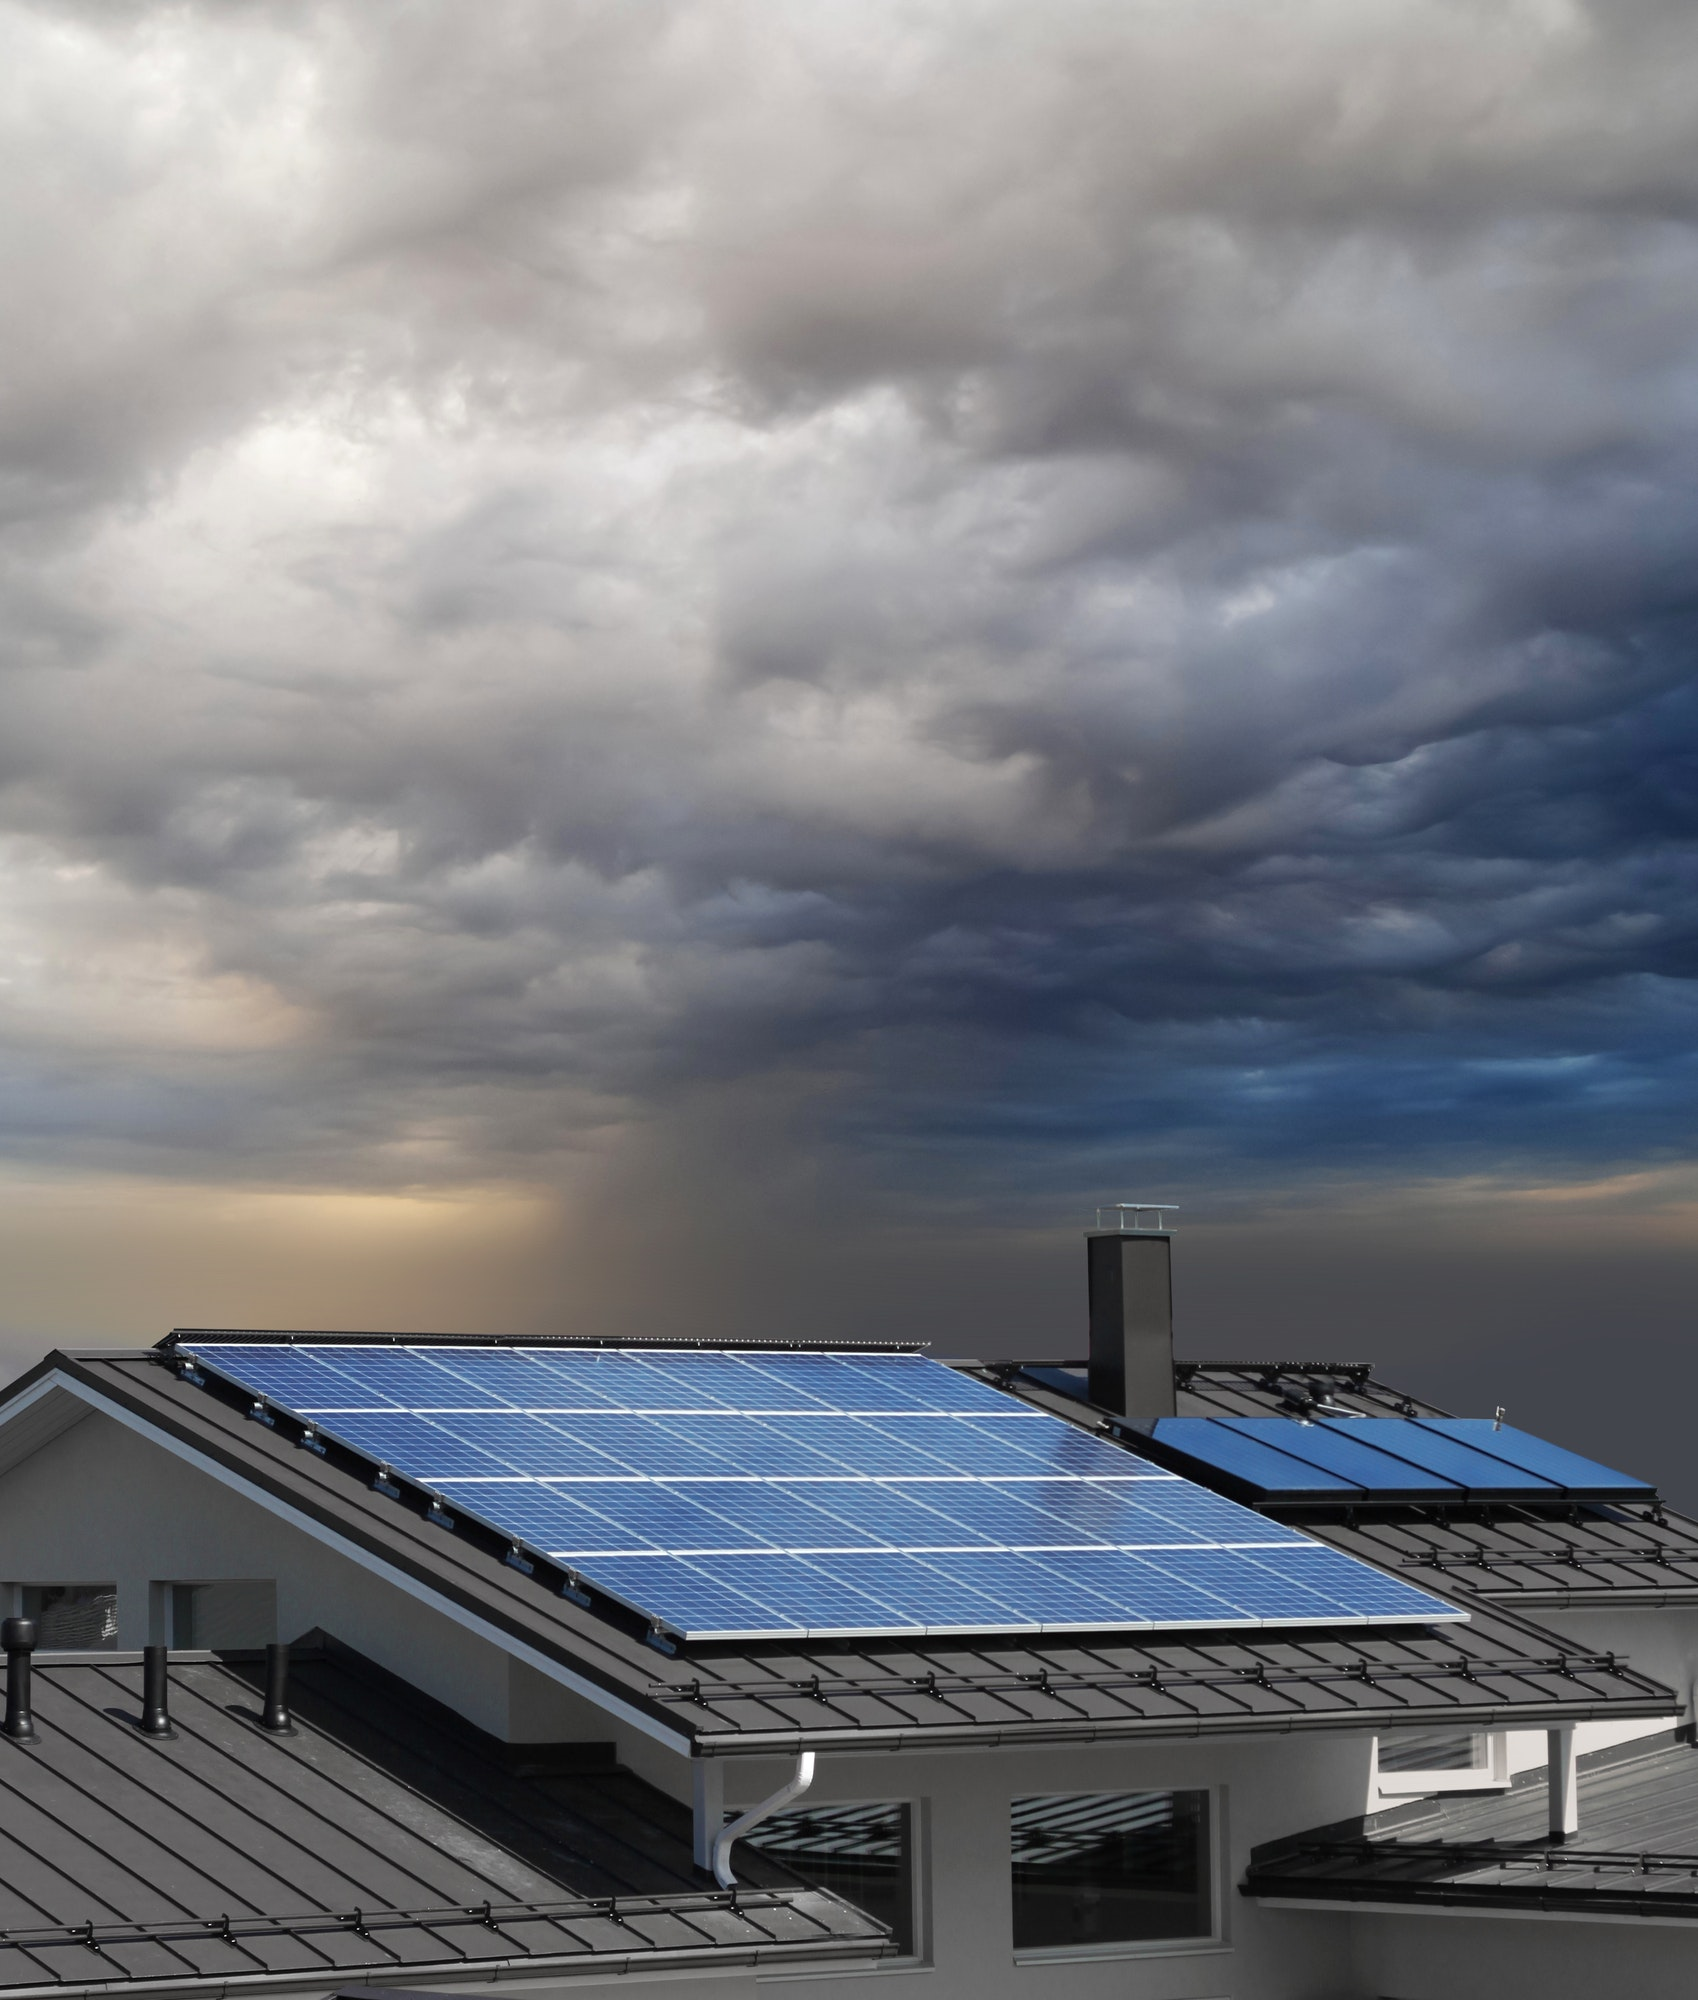 solar-panels-on-house-rooftop.jpg